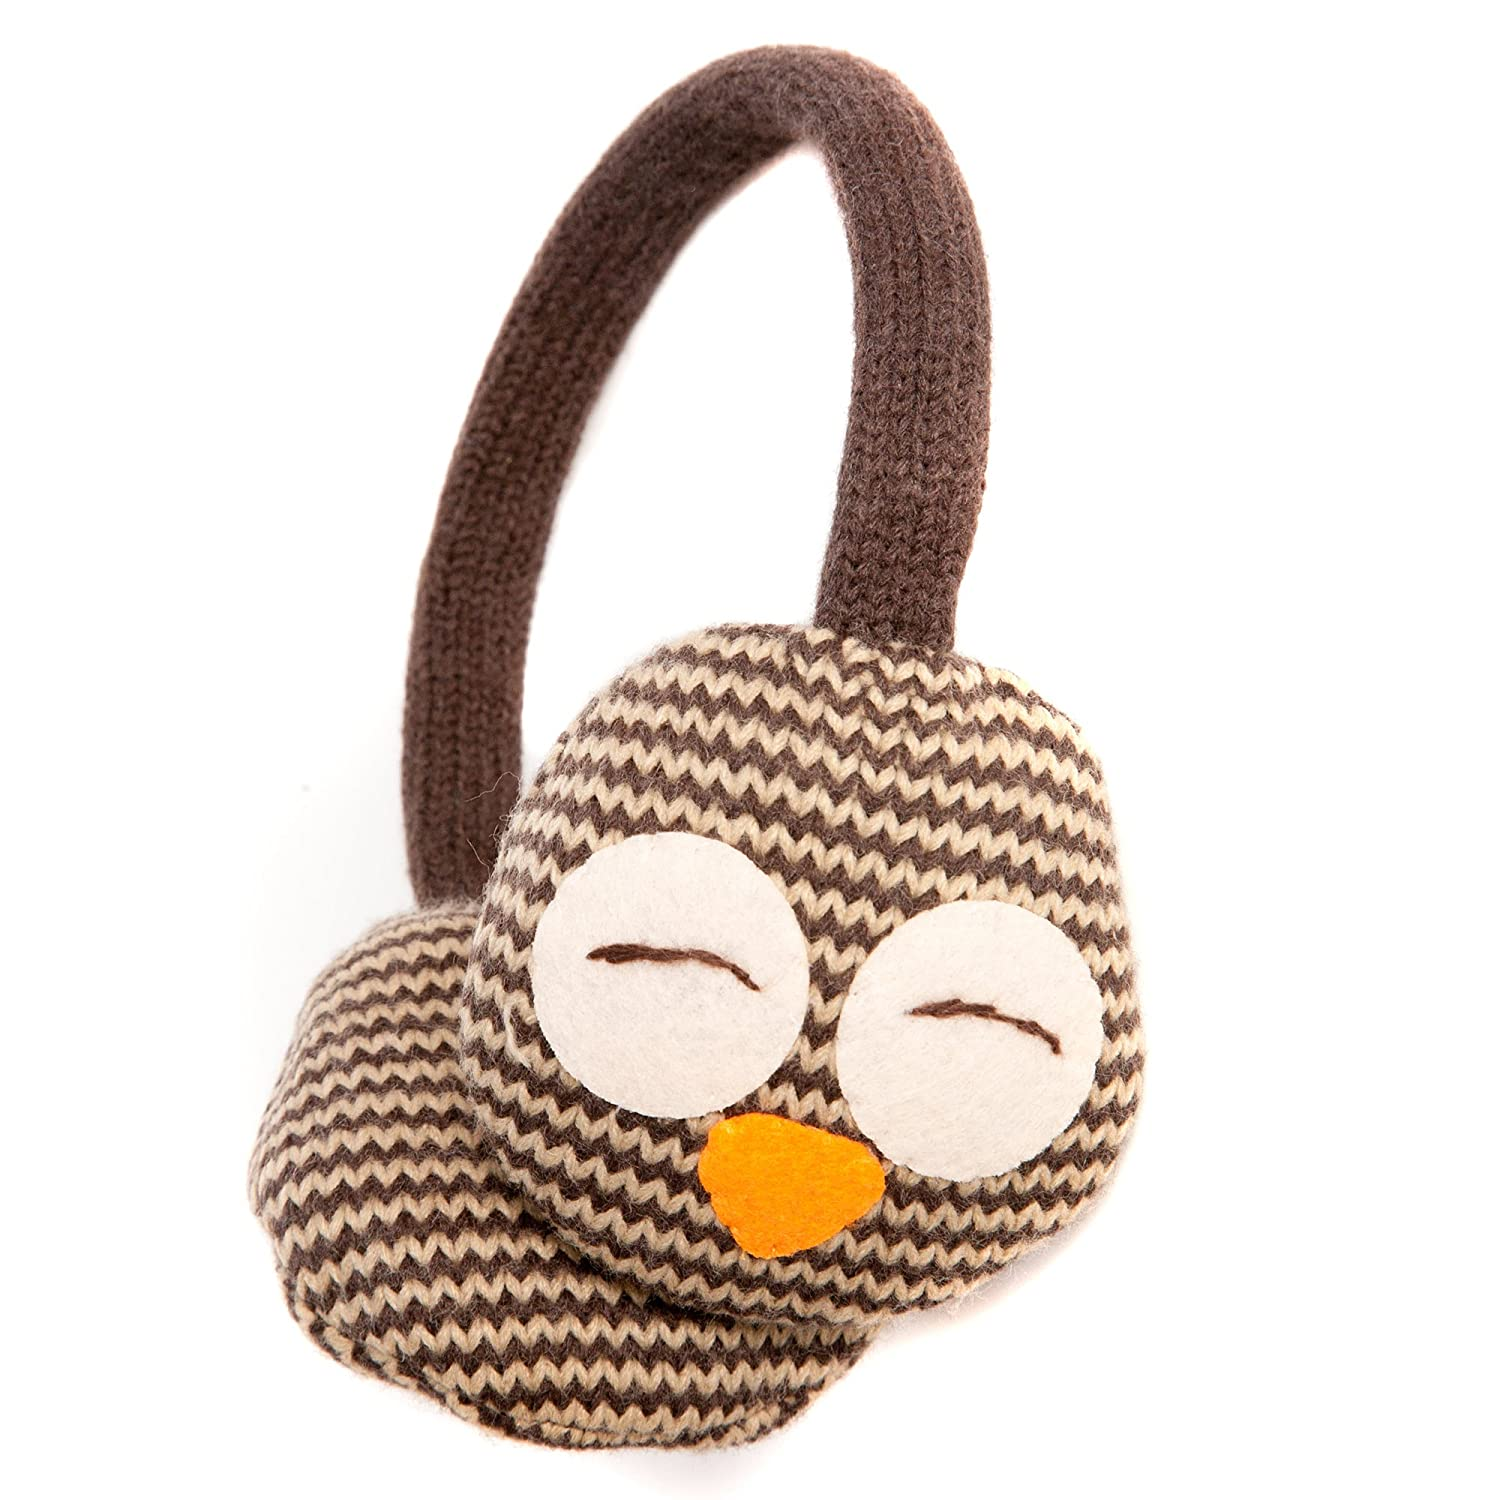 Cute Brown Sleepy Owl Style Winter Thermal Fashion Earmuffs - Onesize fits most